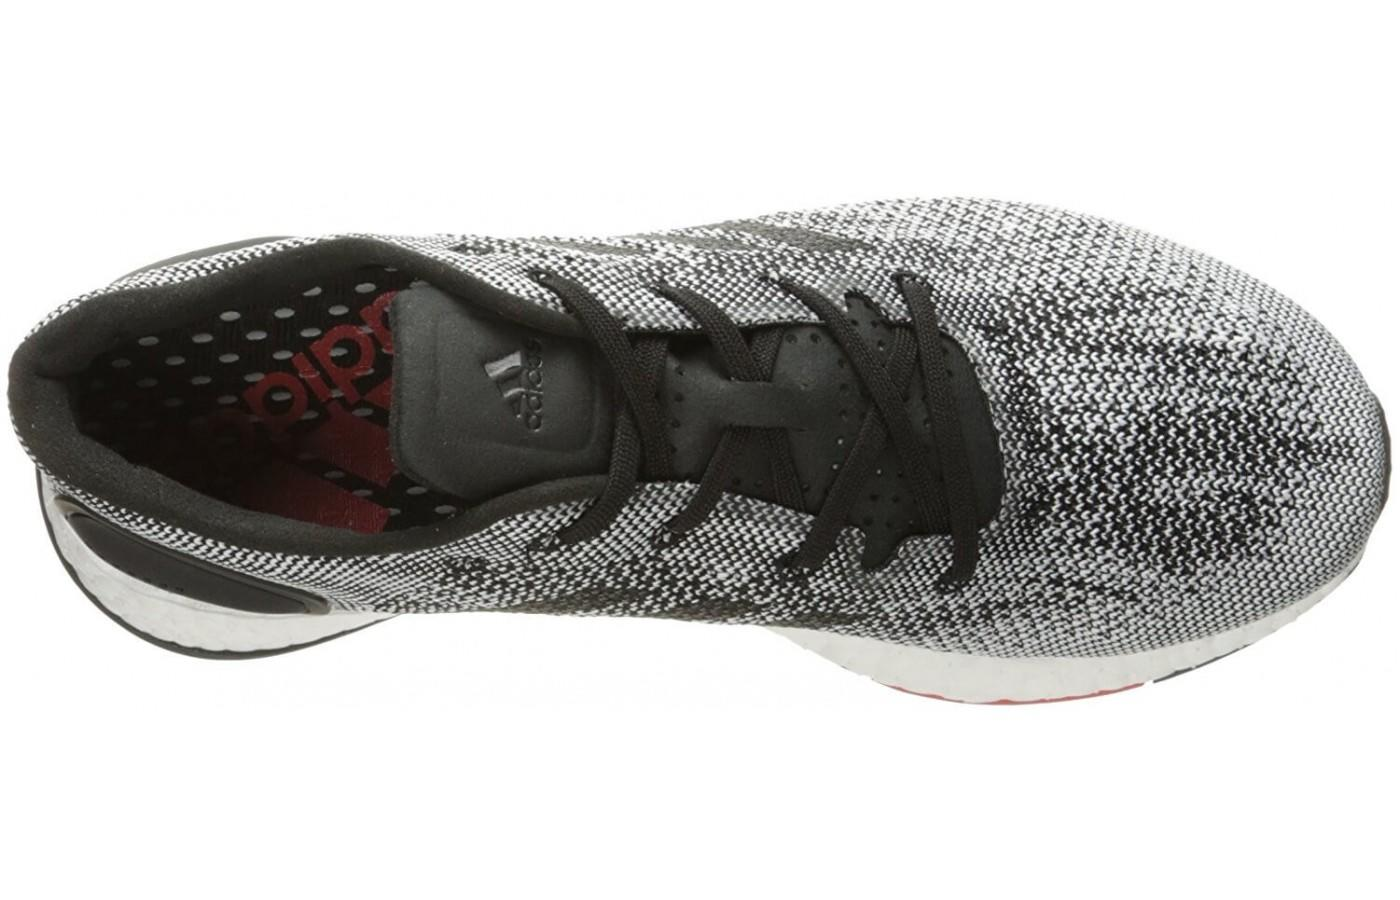 The boost cushioning in the midsole is the shining star of this model.